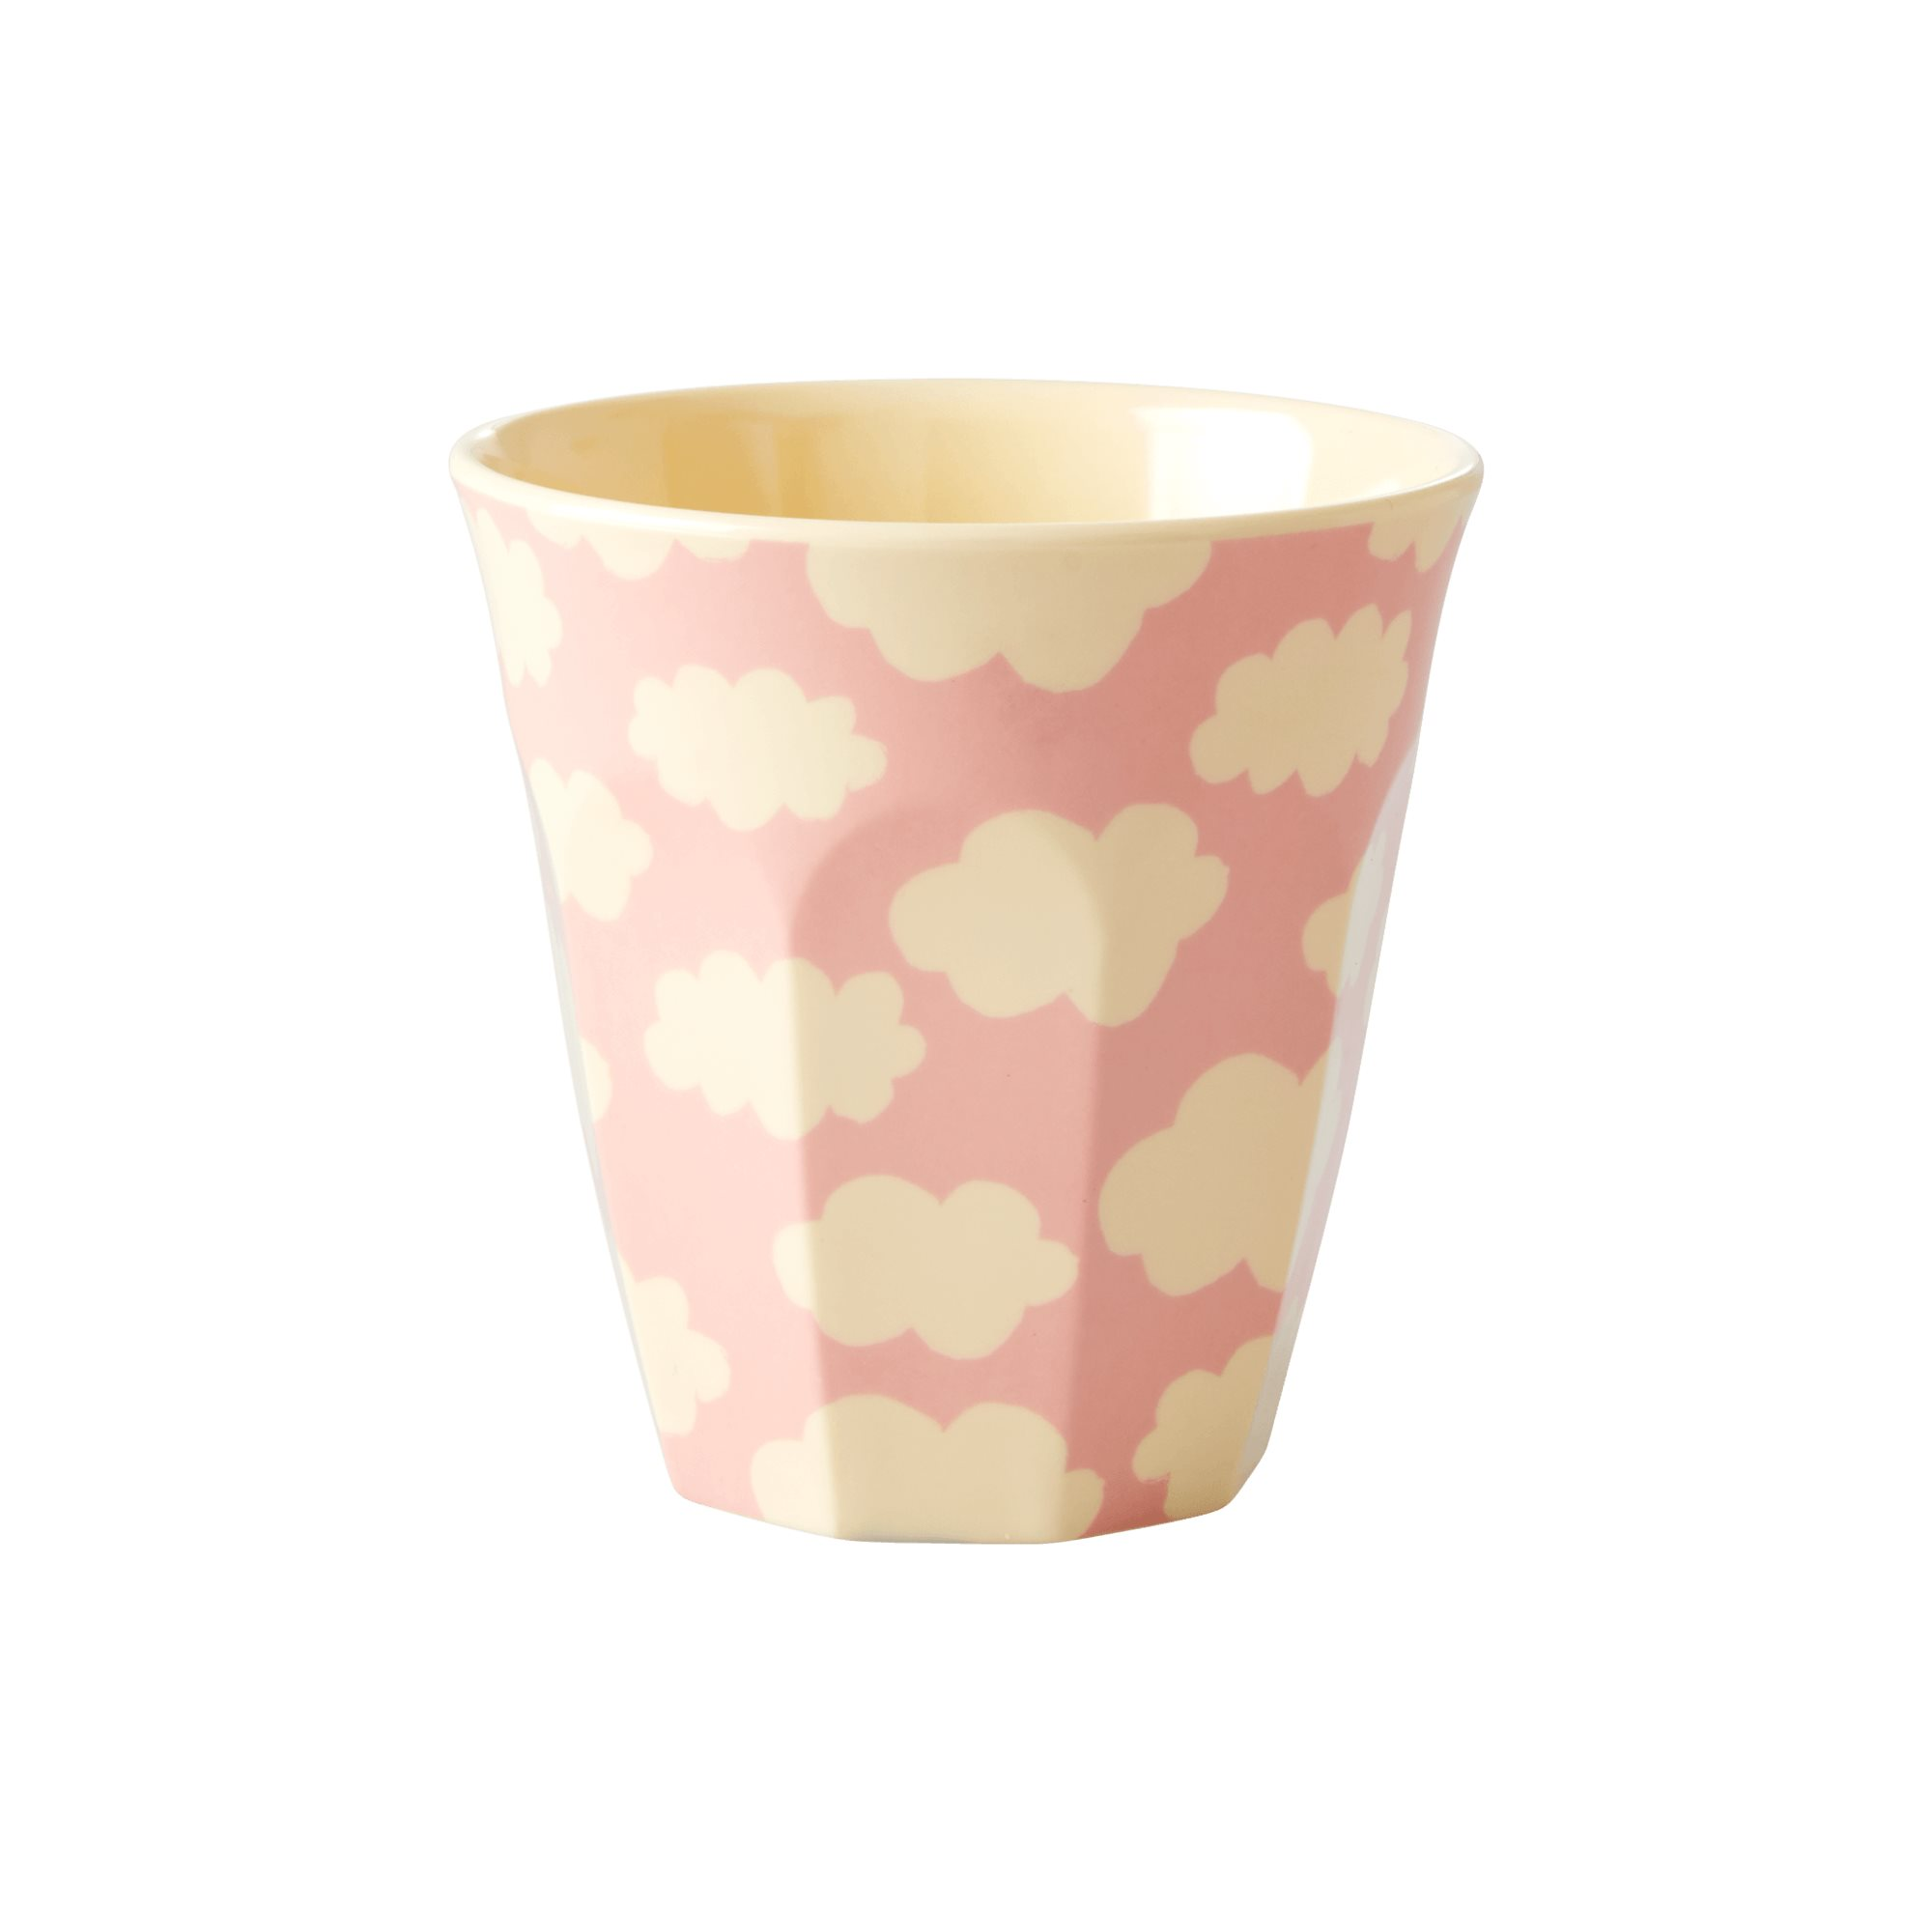 Small Melamine Kids Cup with Cloud Print - Pink - Small - rice